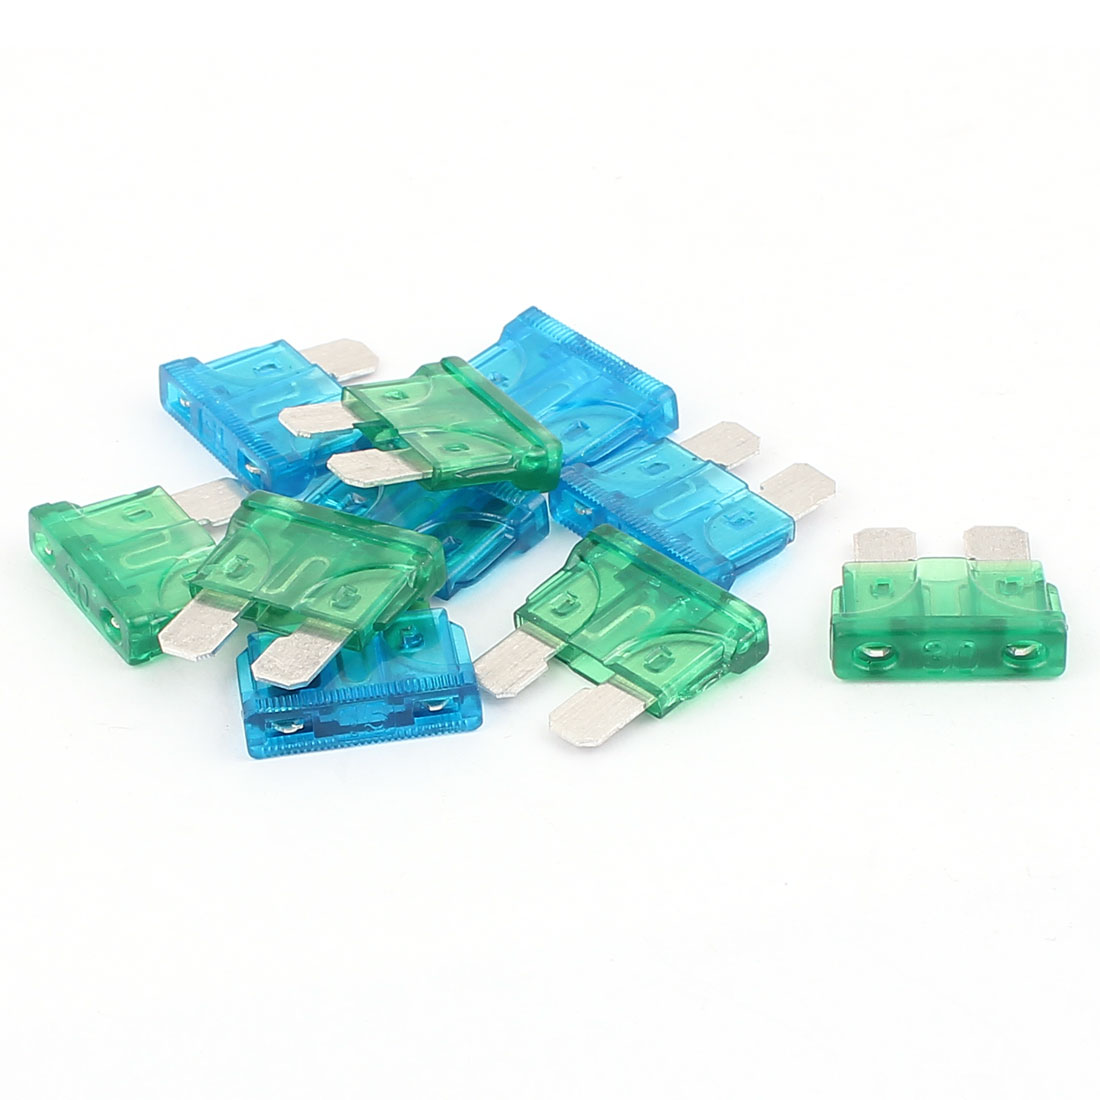 10pcs Automotive Car Vehicle Truck SUV Boat ATC ATO Blade Fuses 15A 30A Blue Green